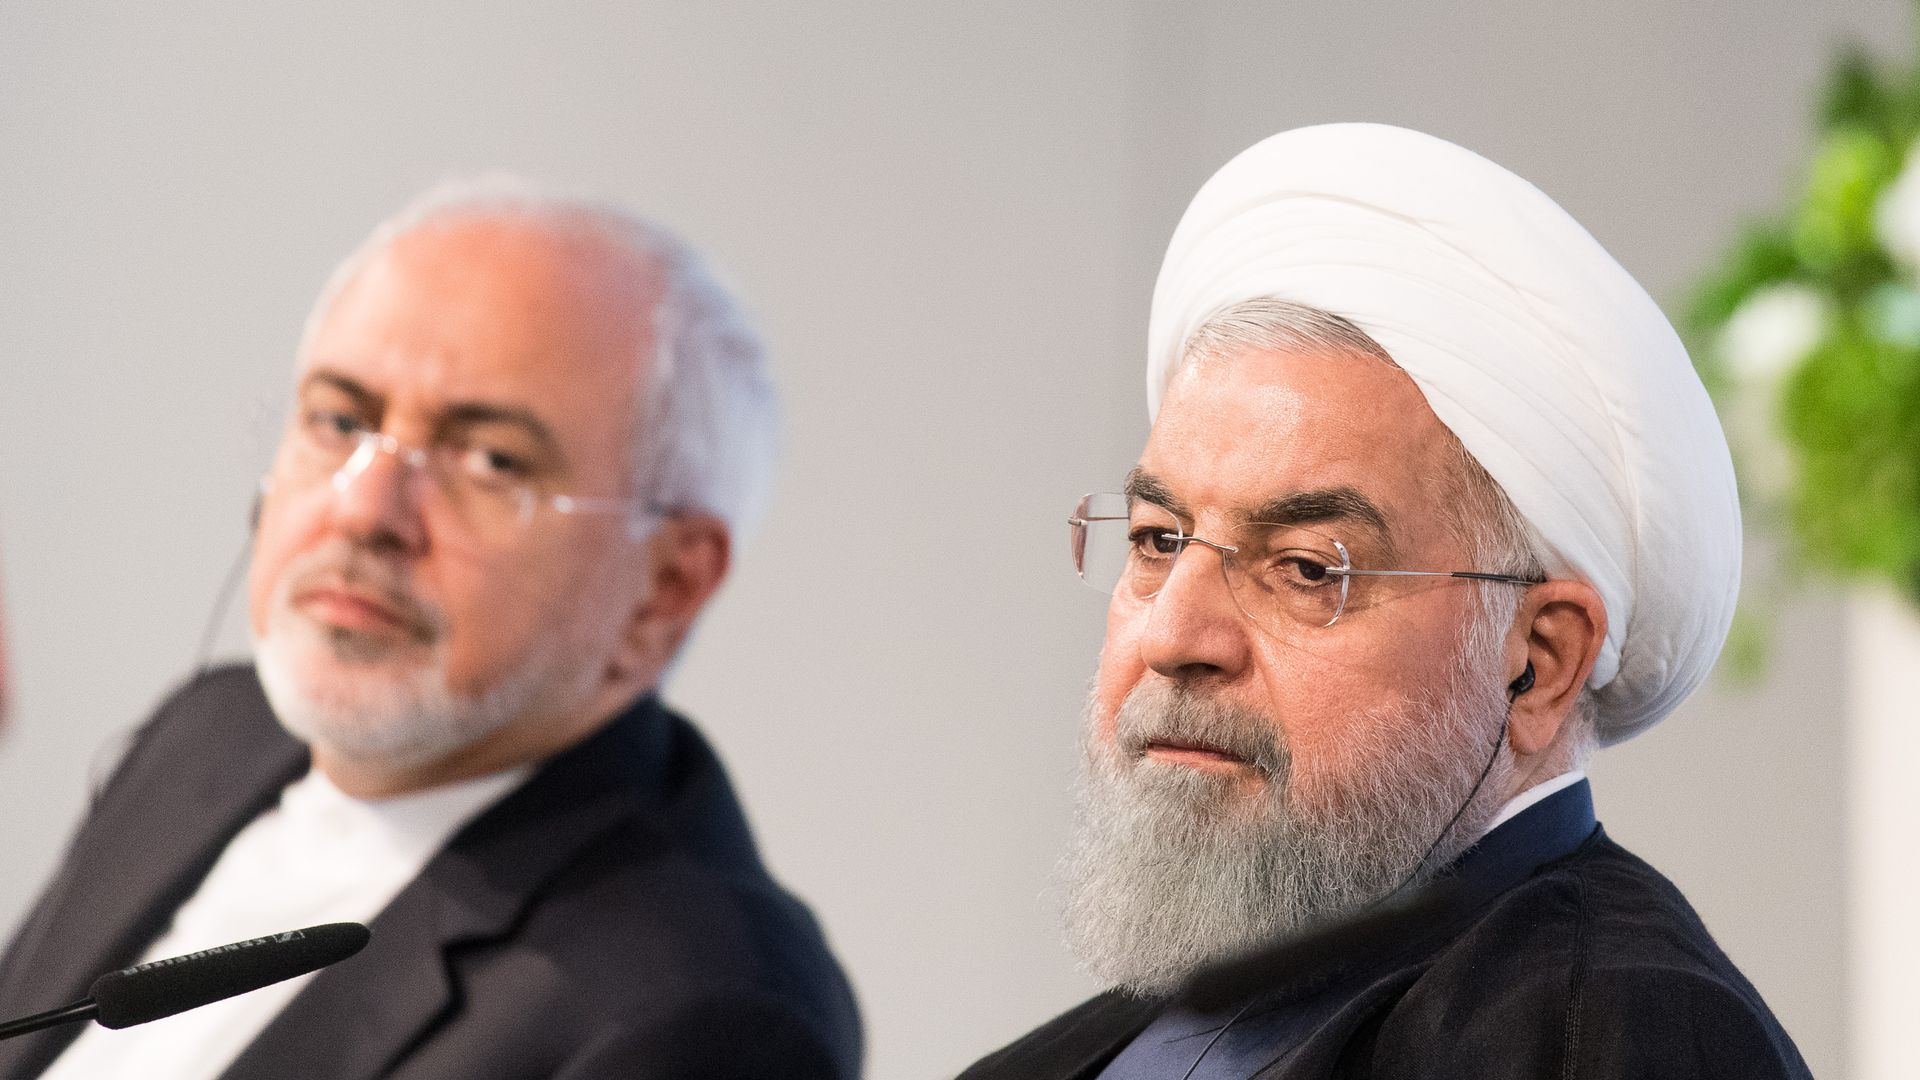 Iranian President Hassan Rouhani and Mohammad Javad Zarif, Iran's foreign secretary, at the Austrian Chamber of Commerce on July 4, 2018 in Vienna, Austria.